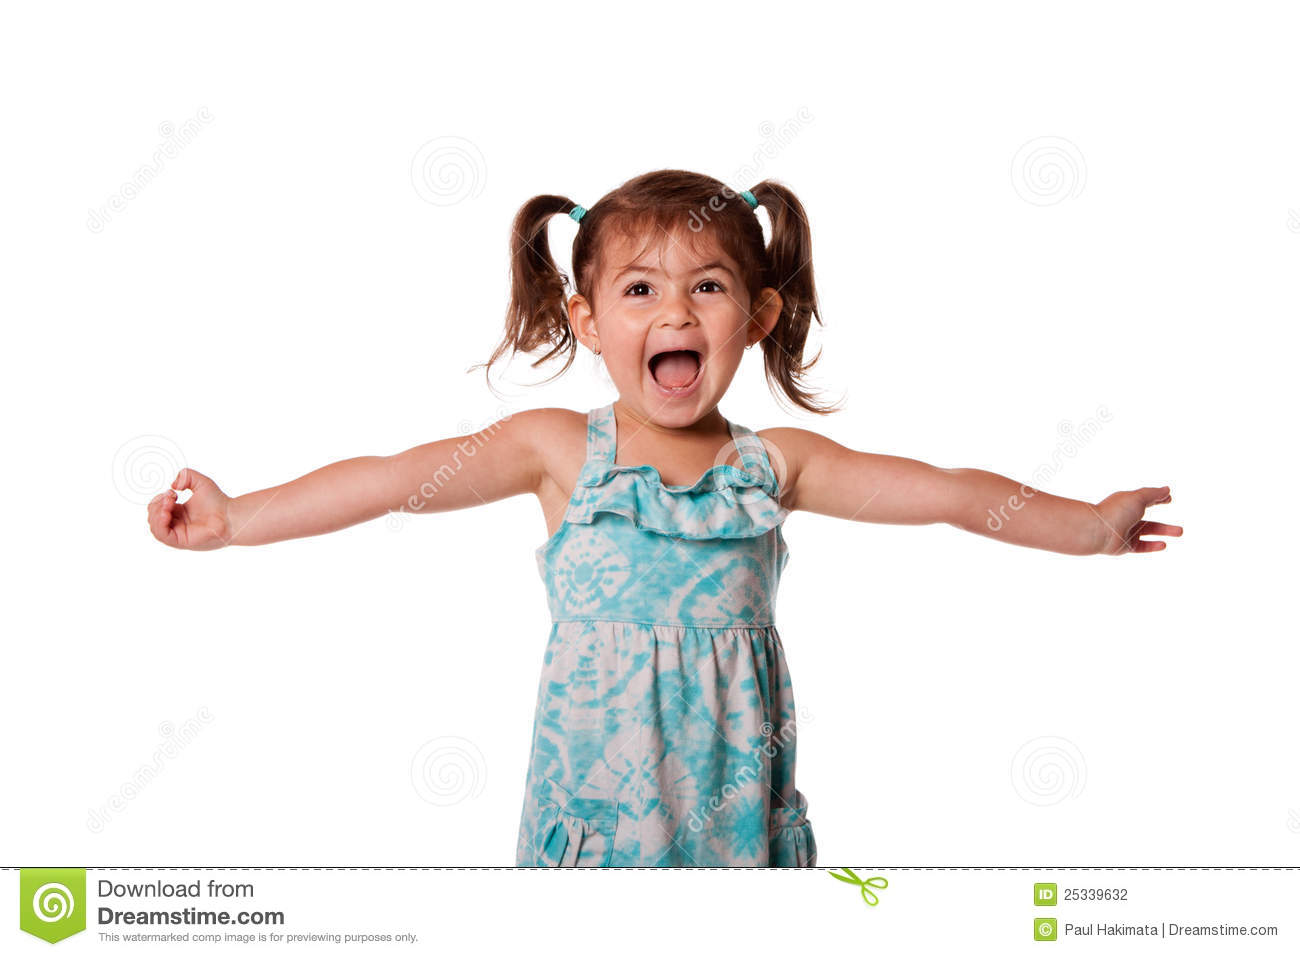 Cute beautiful funny ecstatic happy little toddler girl celebrating